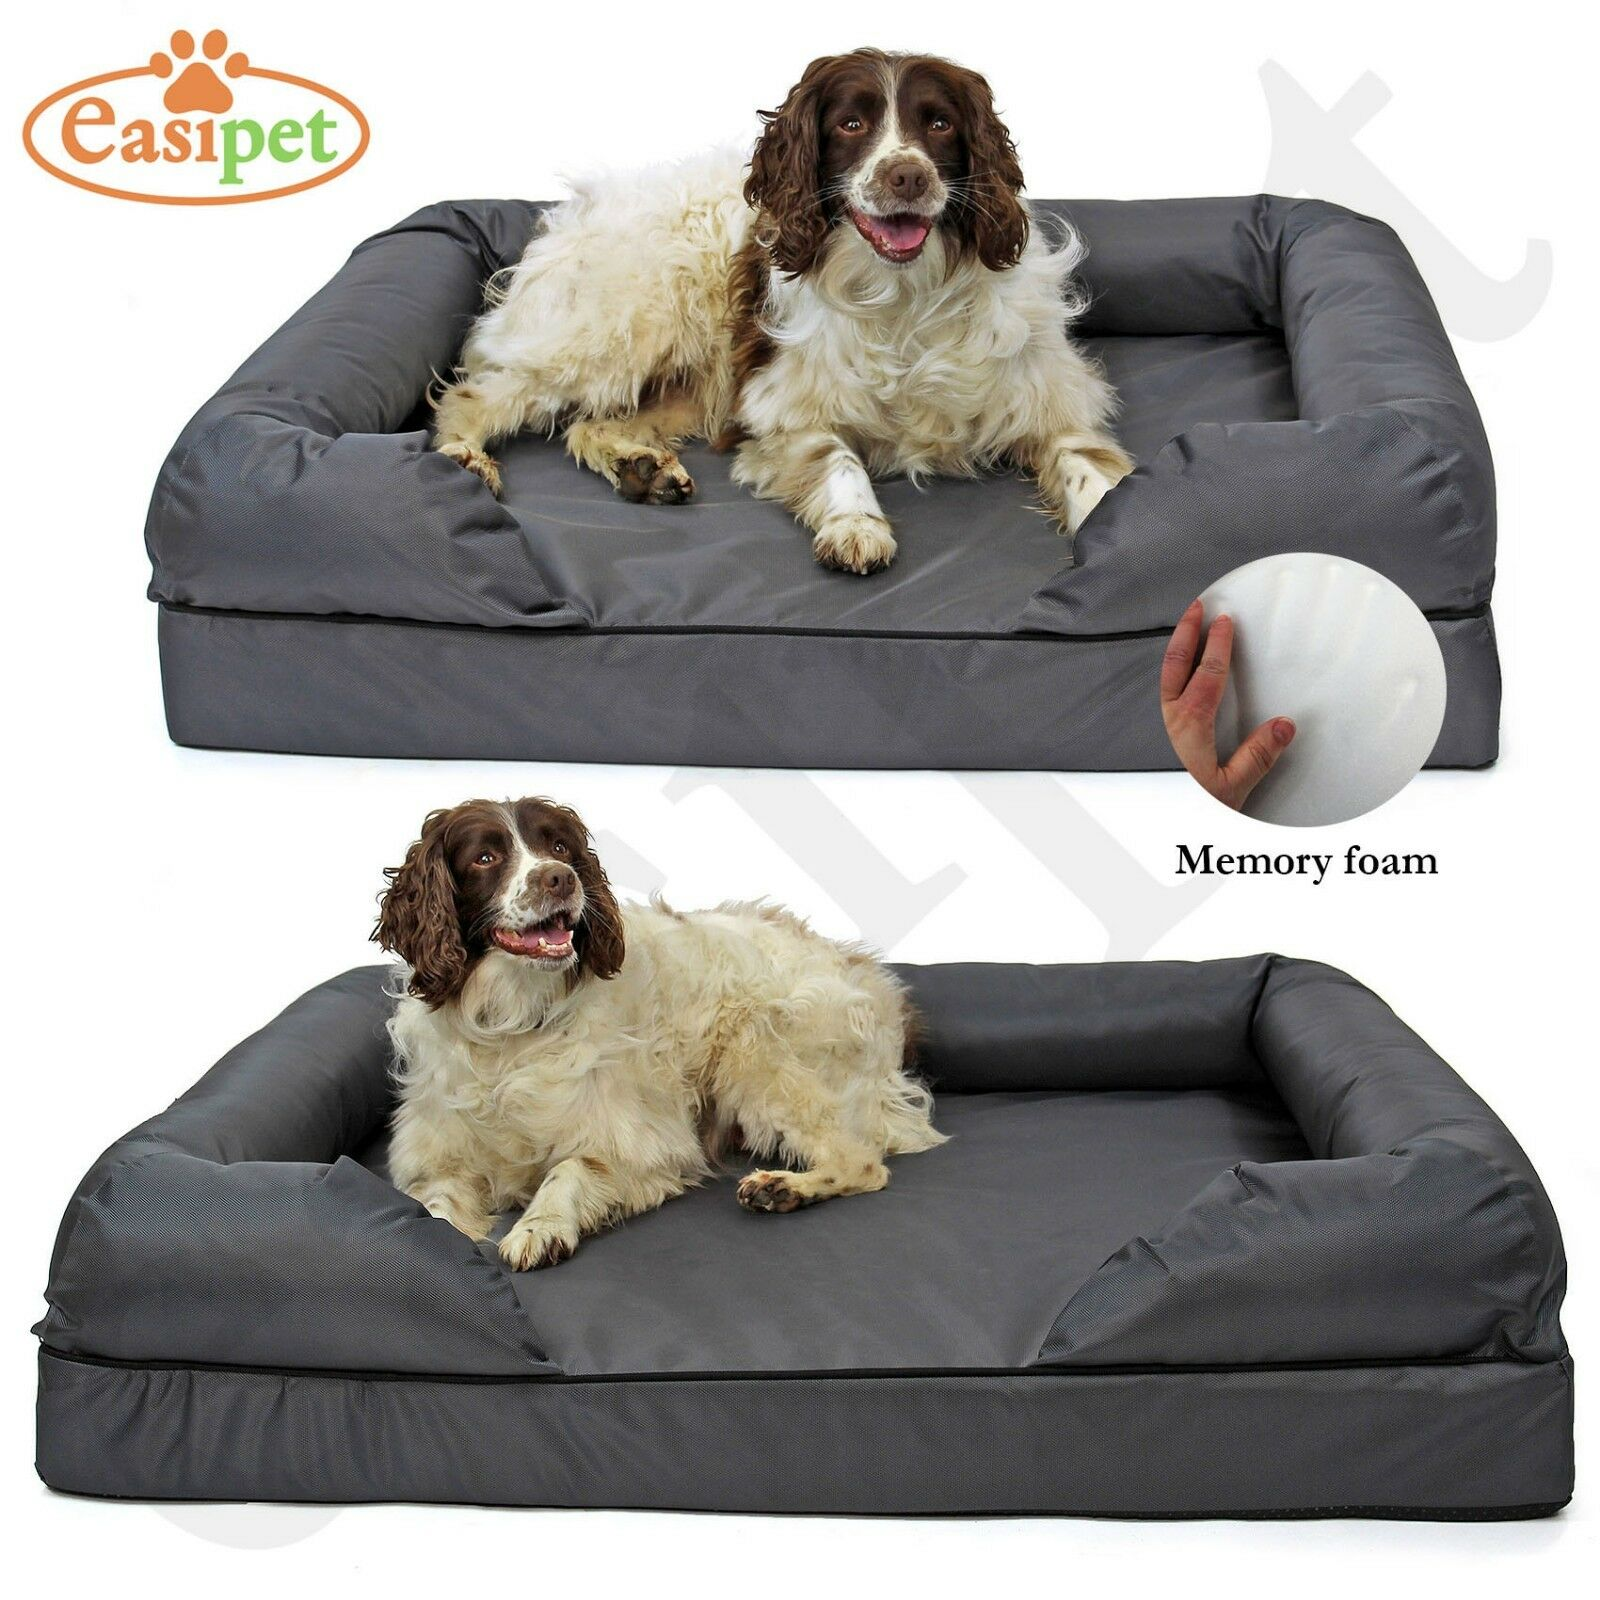 MEMORY Foam per cane Letto Deluxe impermeabile morbido Cuscino per sedia divano Pet Luxury easipet